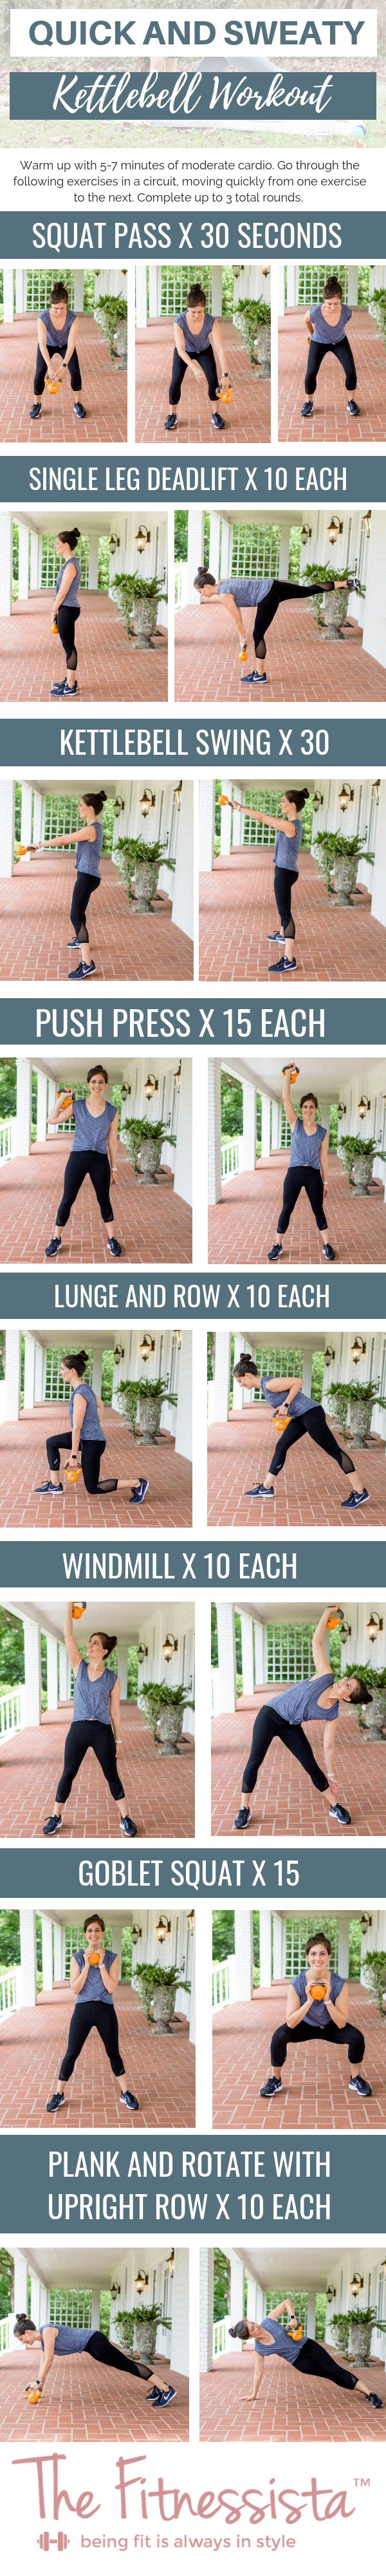 Quick and sweaty 1 kettlebell workout you can do anywhere. All the details at fitnessista.com